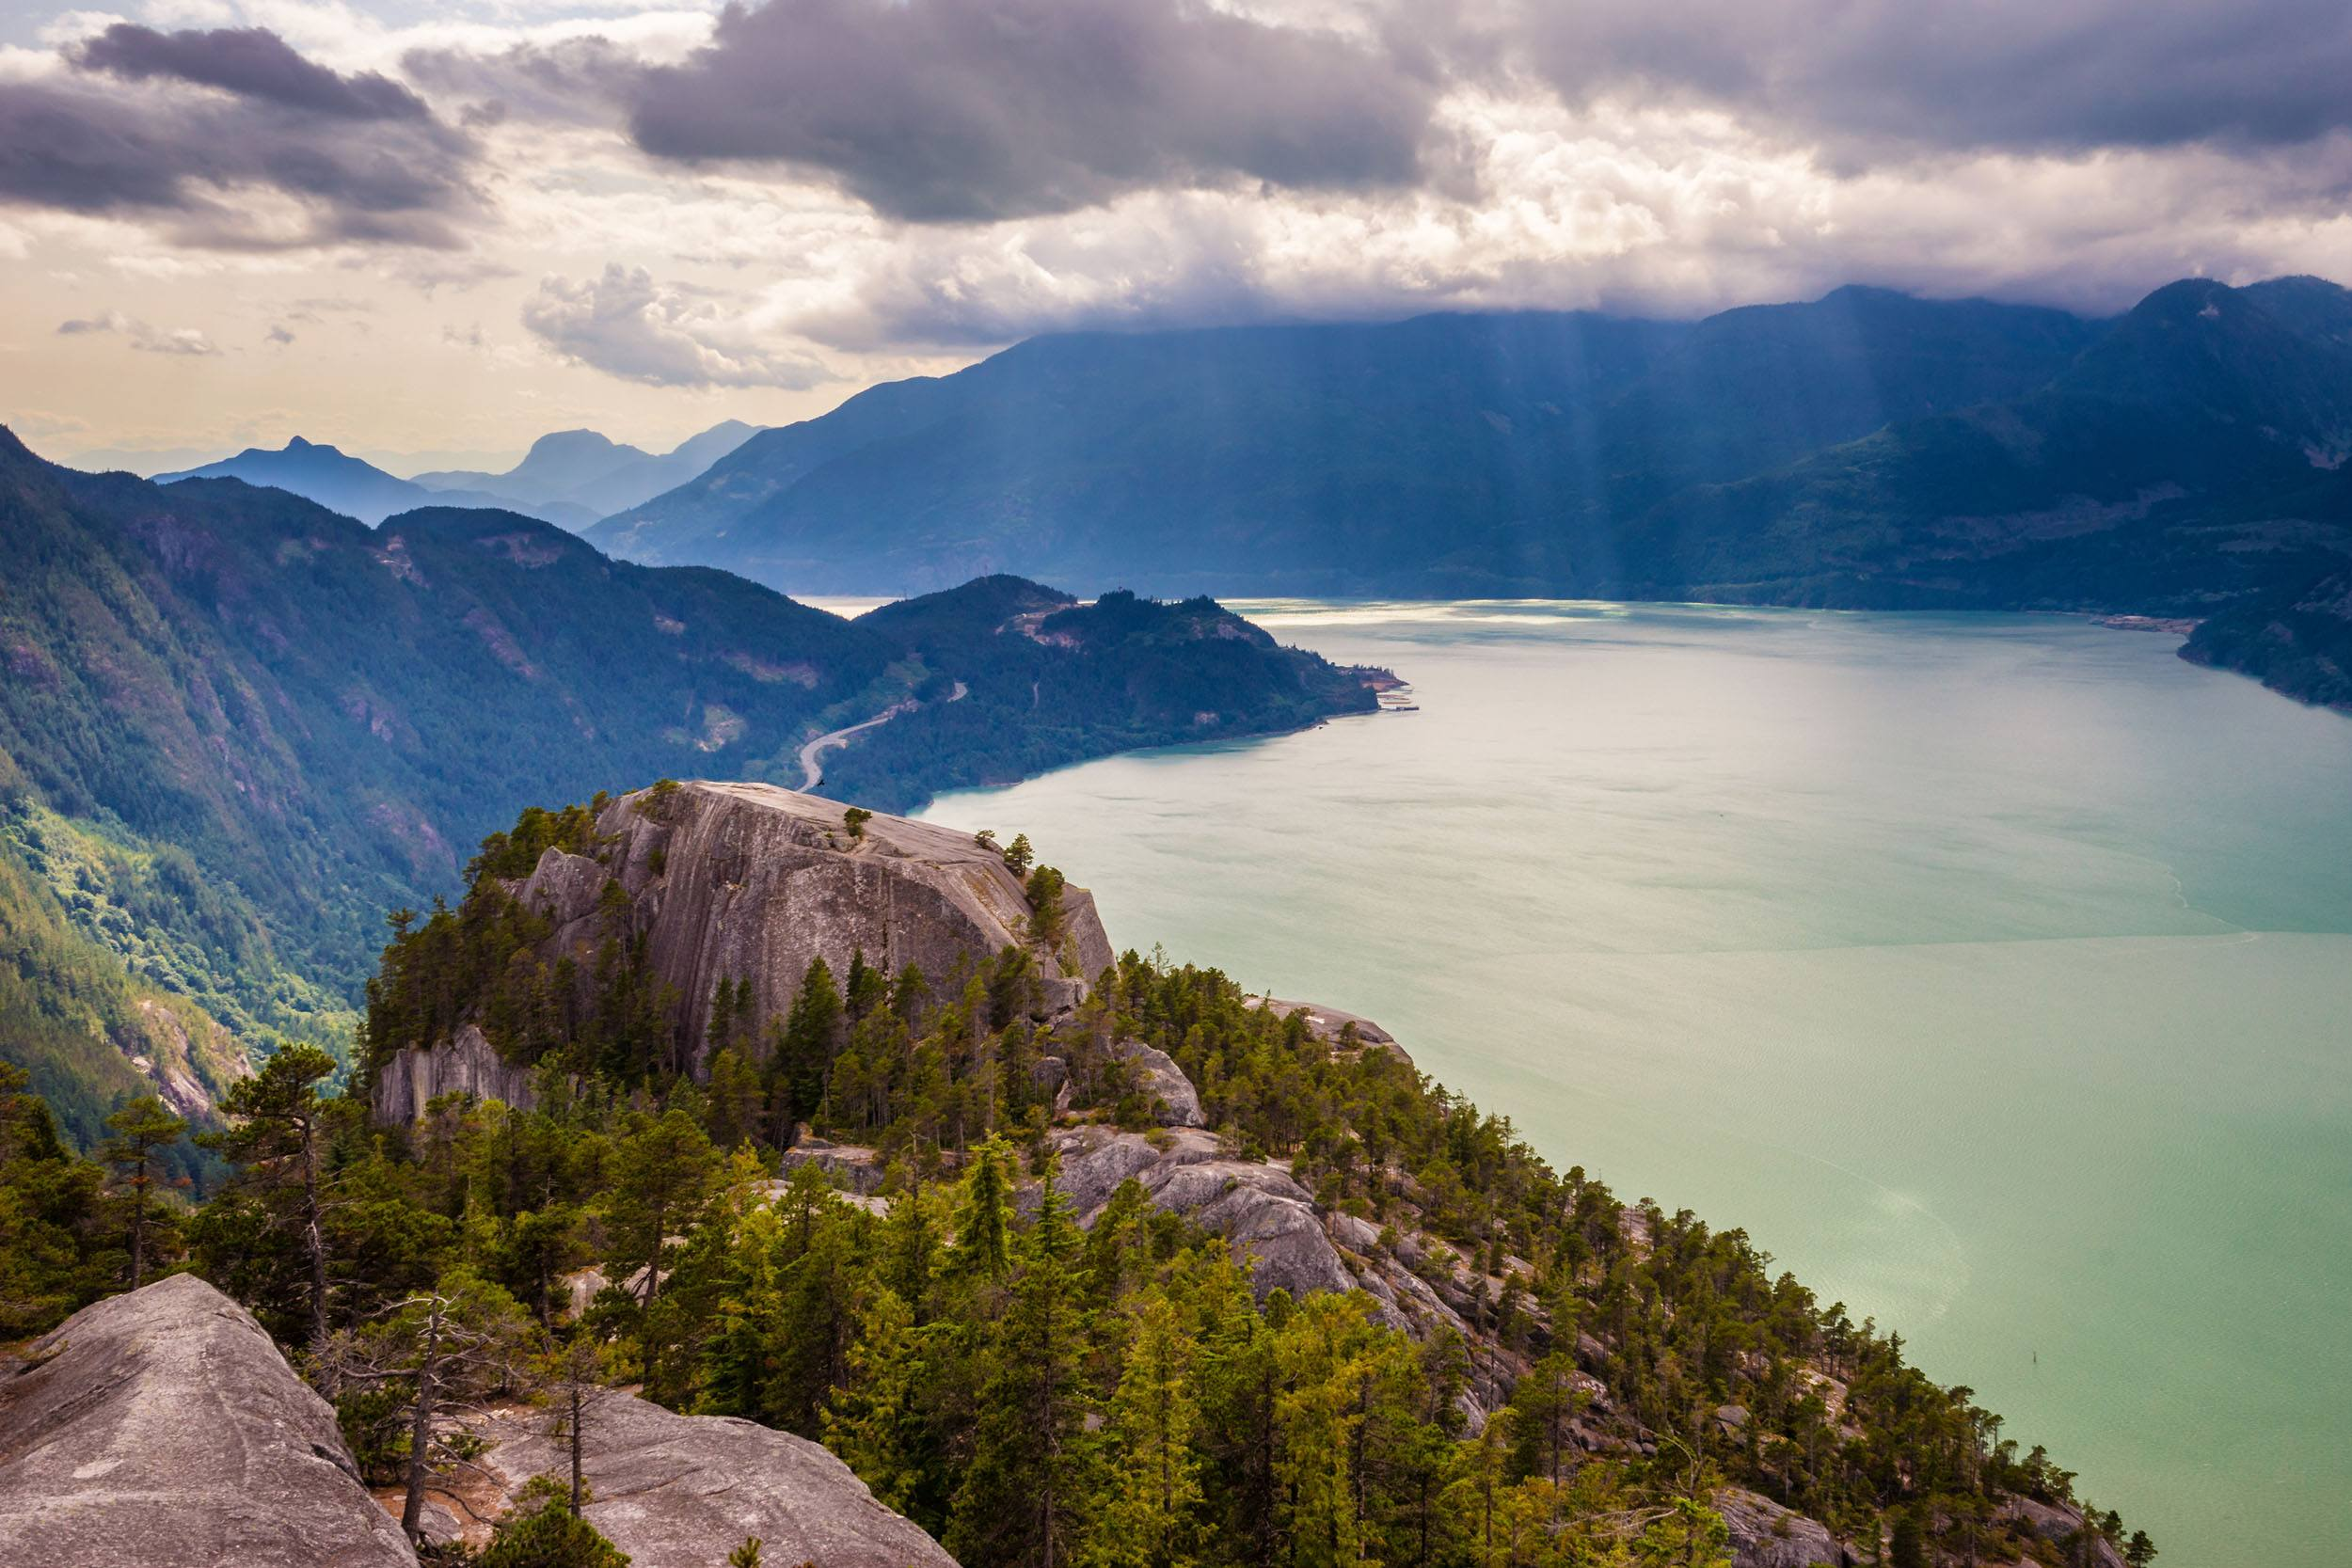 View over the Howe Sound from the Stawamus Chief in Squamish (Rowan Sims Photography/Shutterstock)